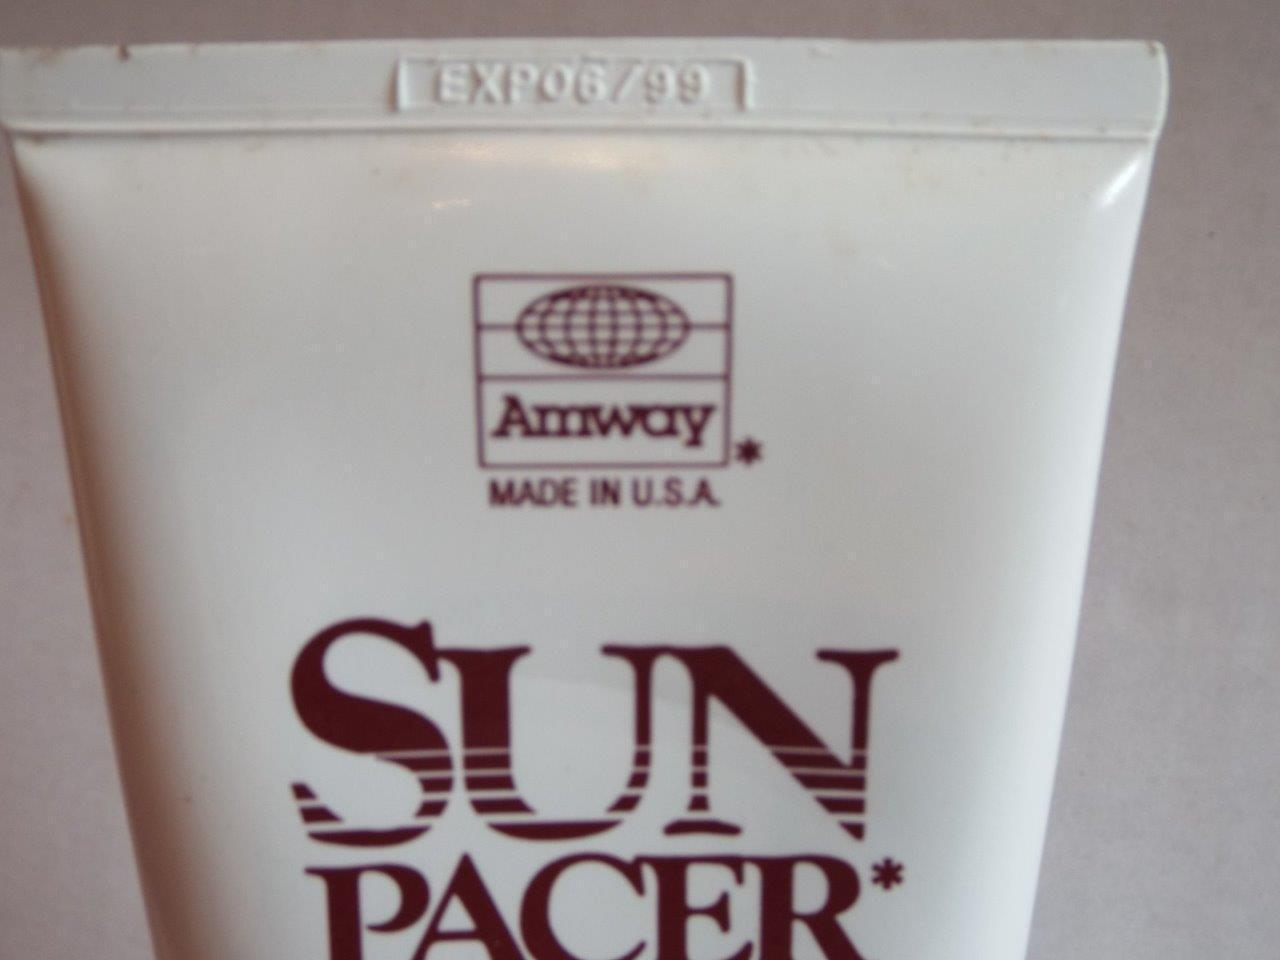 Vintage 1999 Amway SUN  PACER Sunscreen Lotion Made in USA NOS Display Only